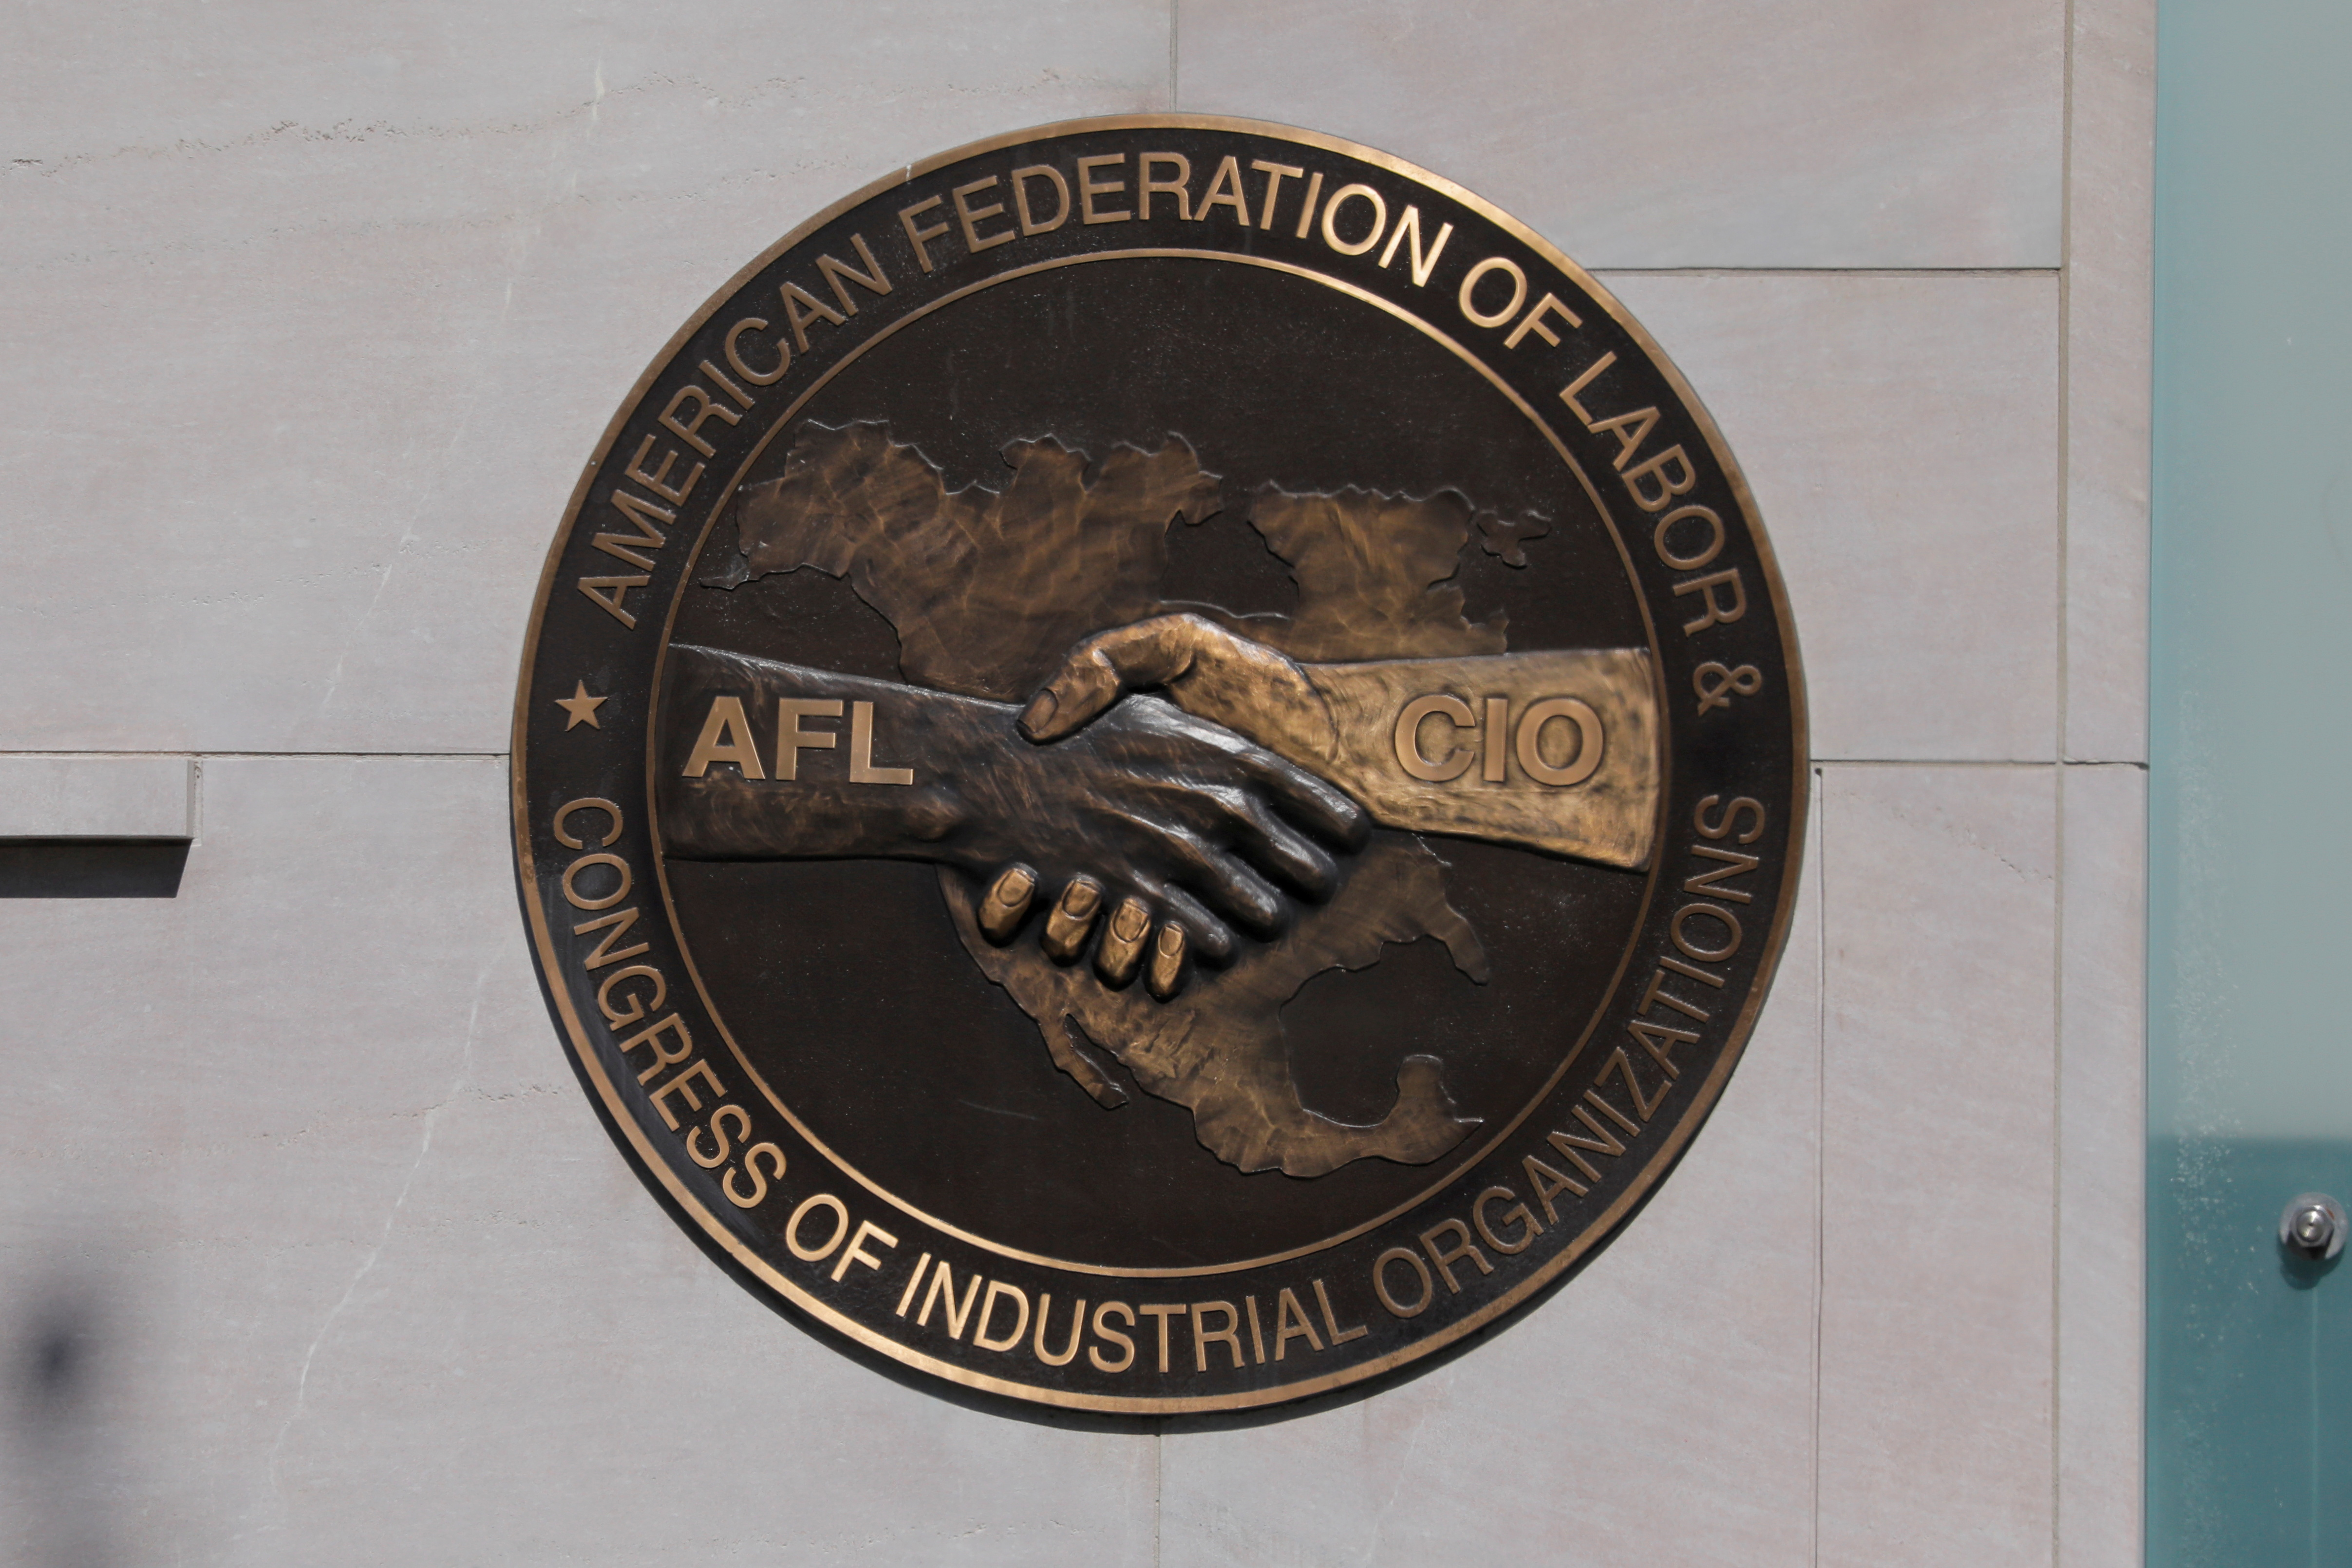 The patch of The American Federation of Labor and Congress of Industrial Organizations (AFL-CIO) is seen outside their headquarters in Washington, D.C., U.S., May 10, 2021. REUTERS/Andrew Kelly/File Photo